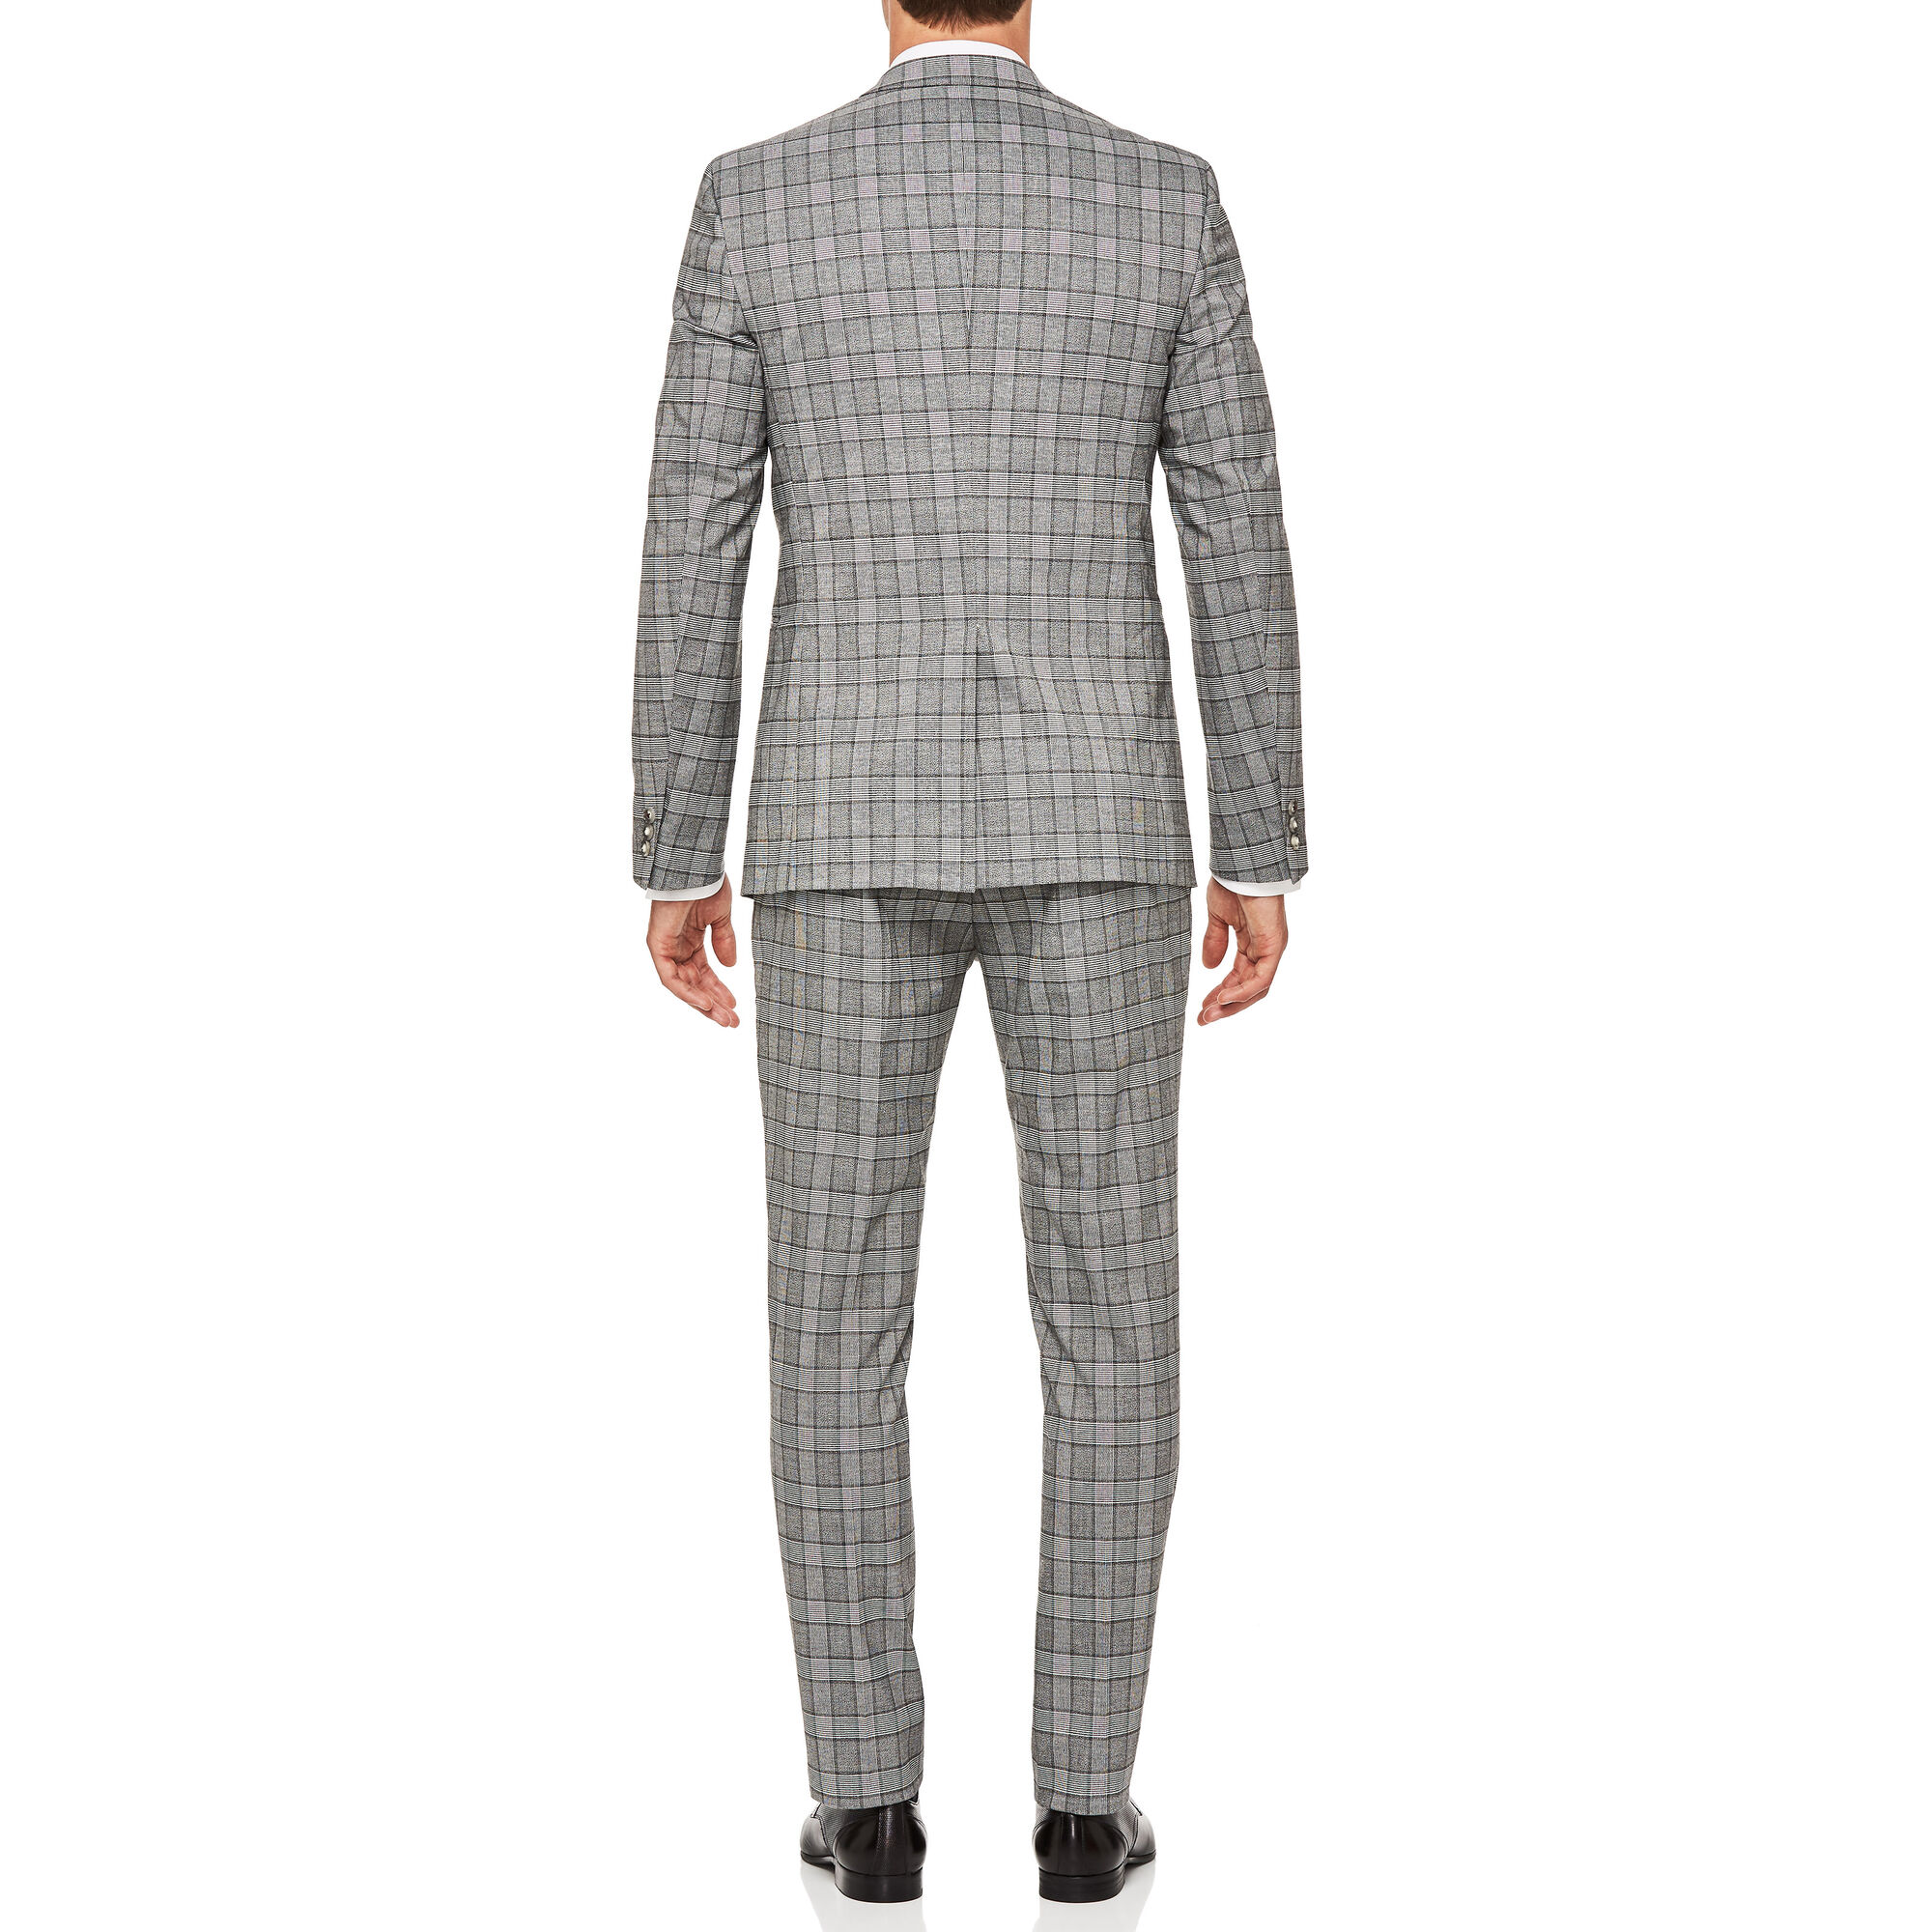 dc1afc8f714d Yardley - Grey Check - Slim Fit Check Tailored Suit | Politix